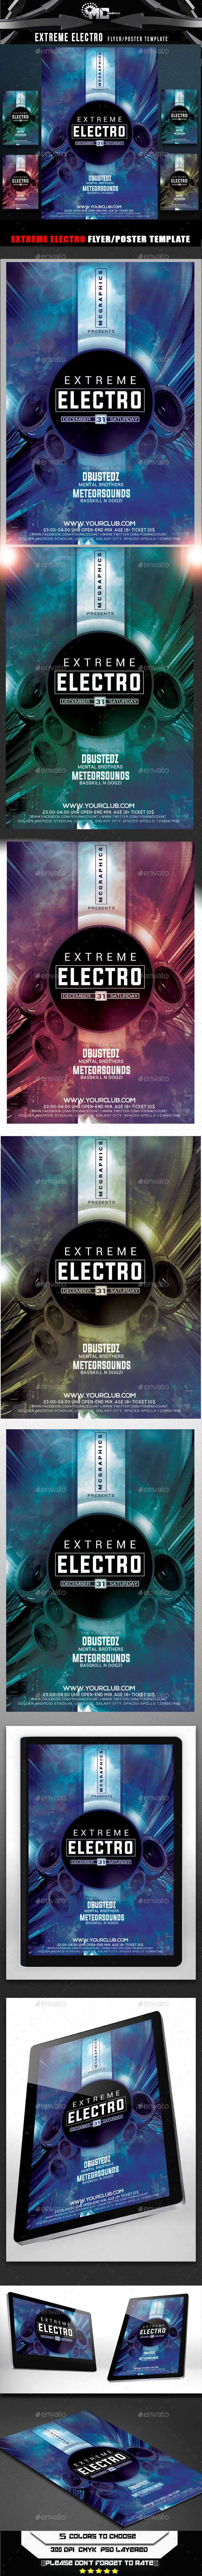 Extreme Electro Flyer Template - Events Flyers